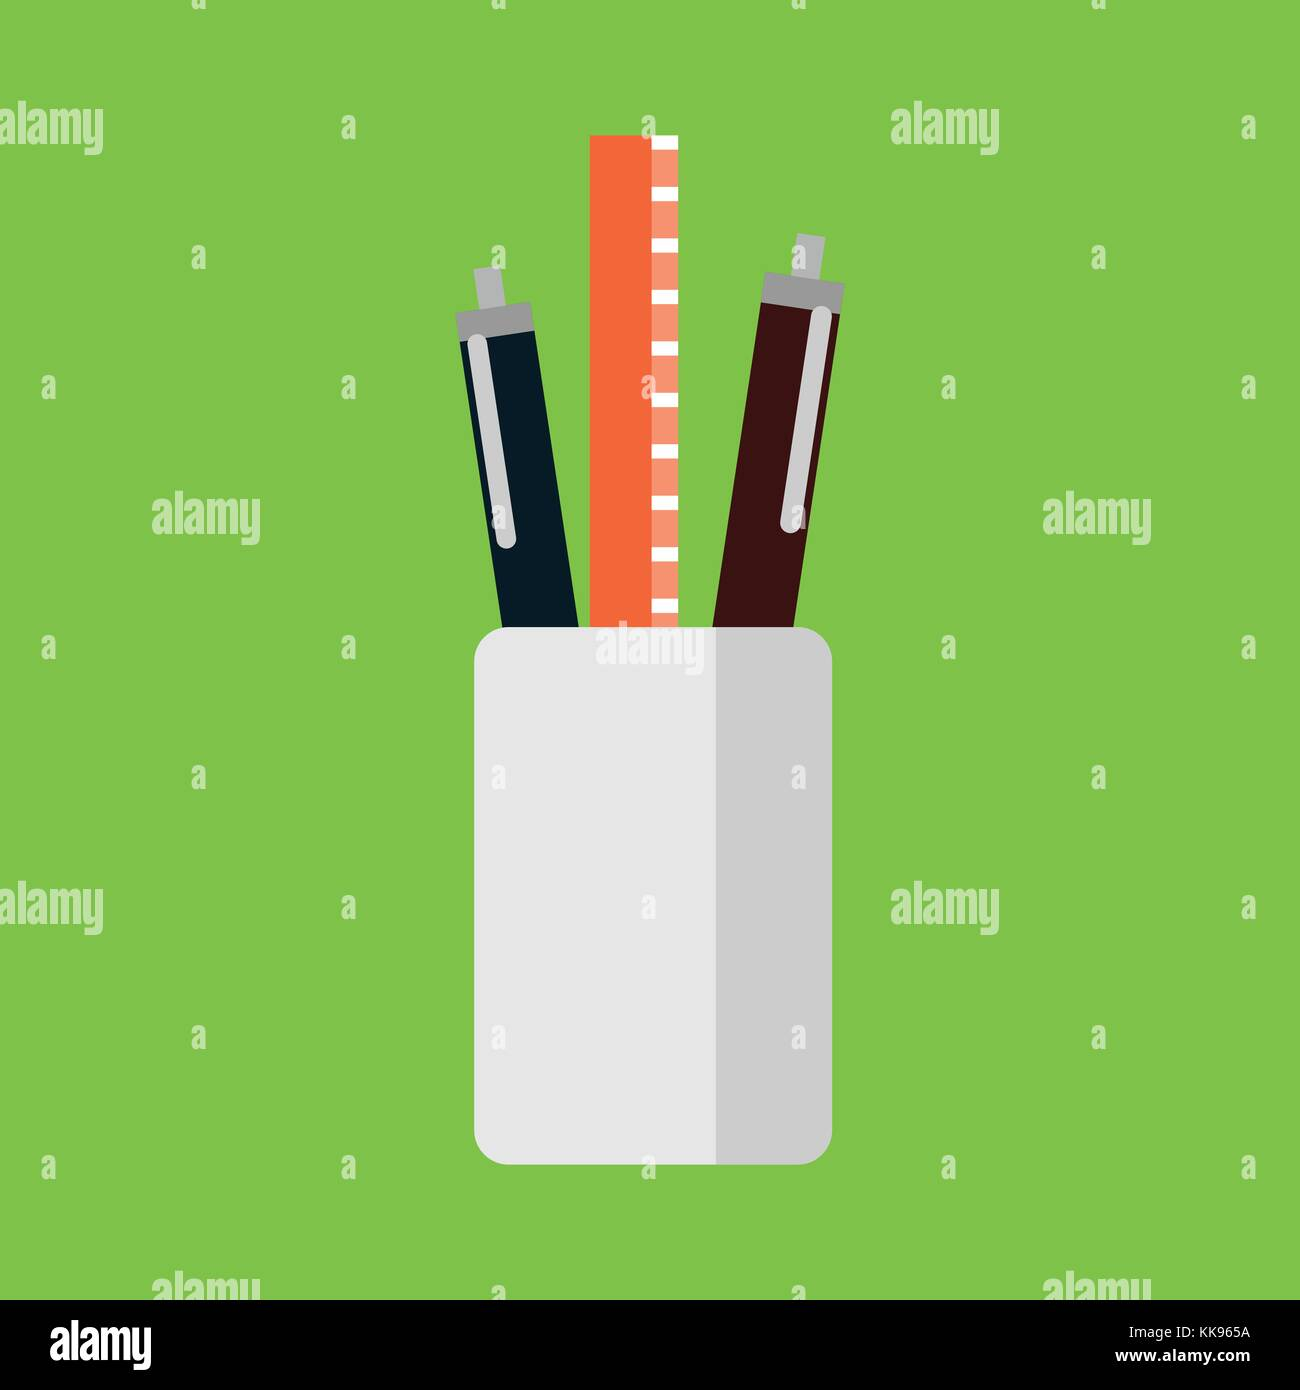 stationary icon stock photos stationary icon stock images alamy